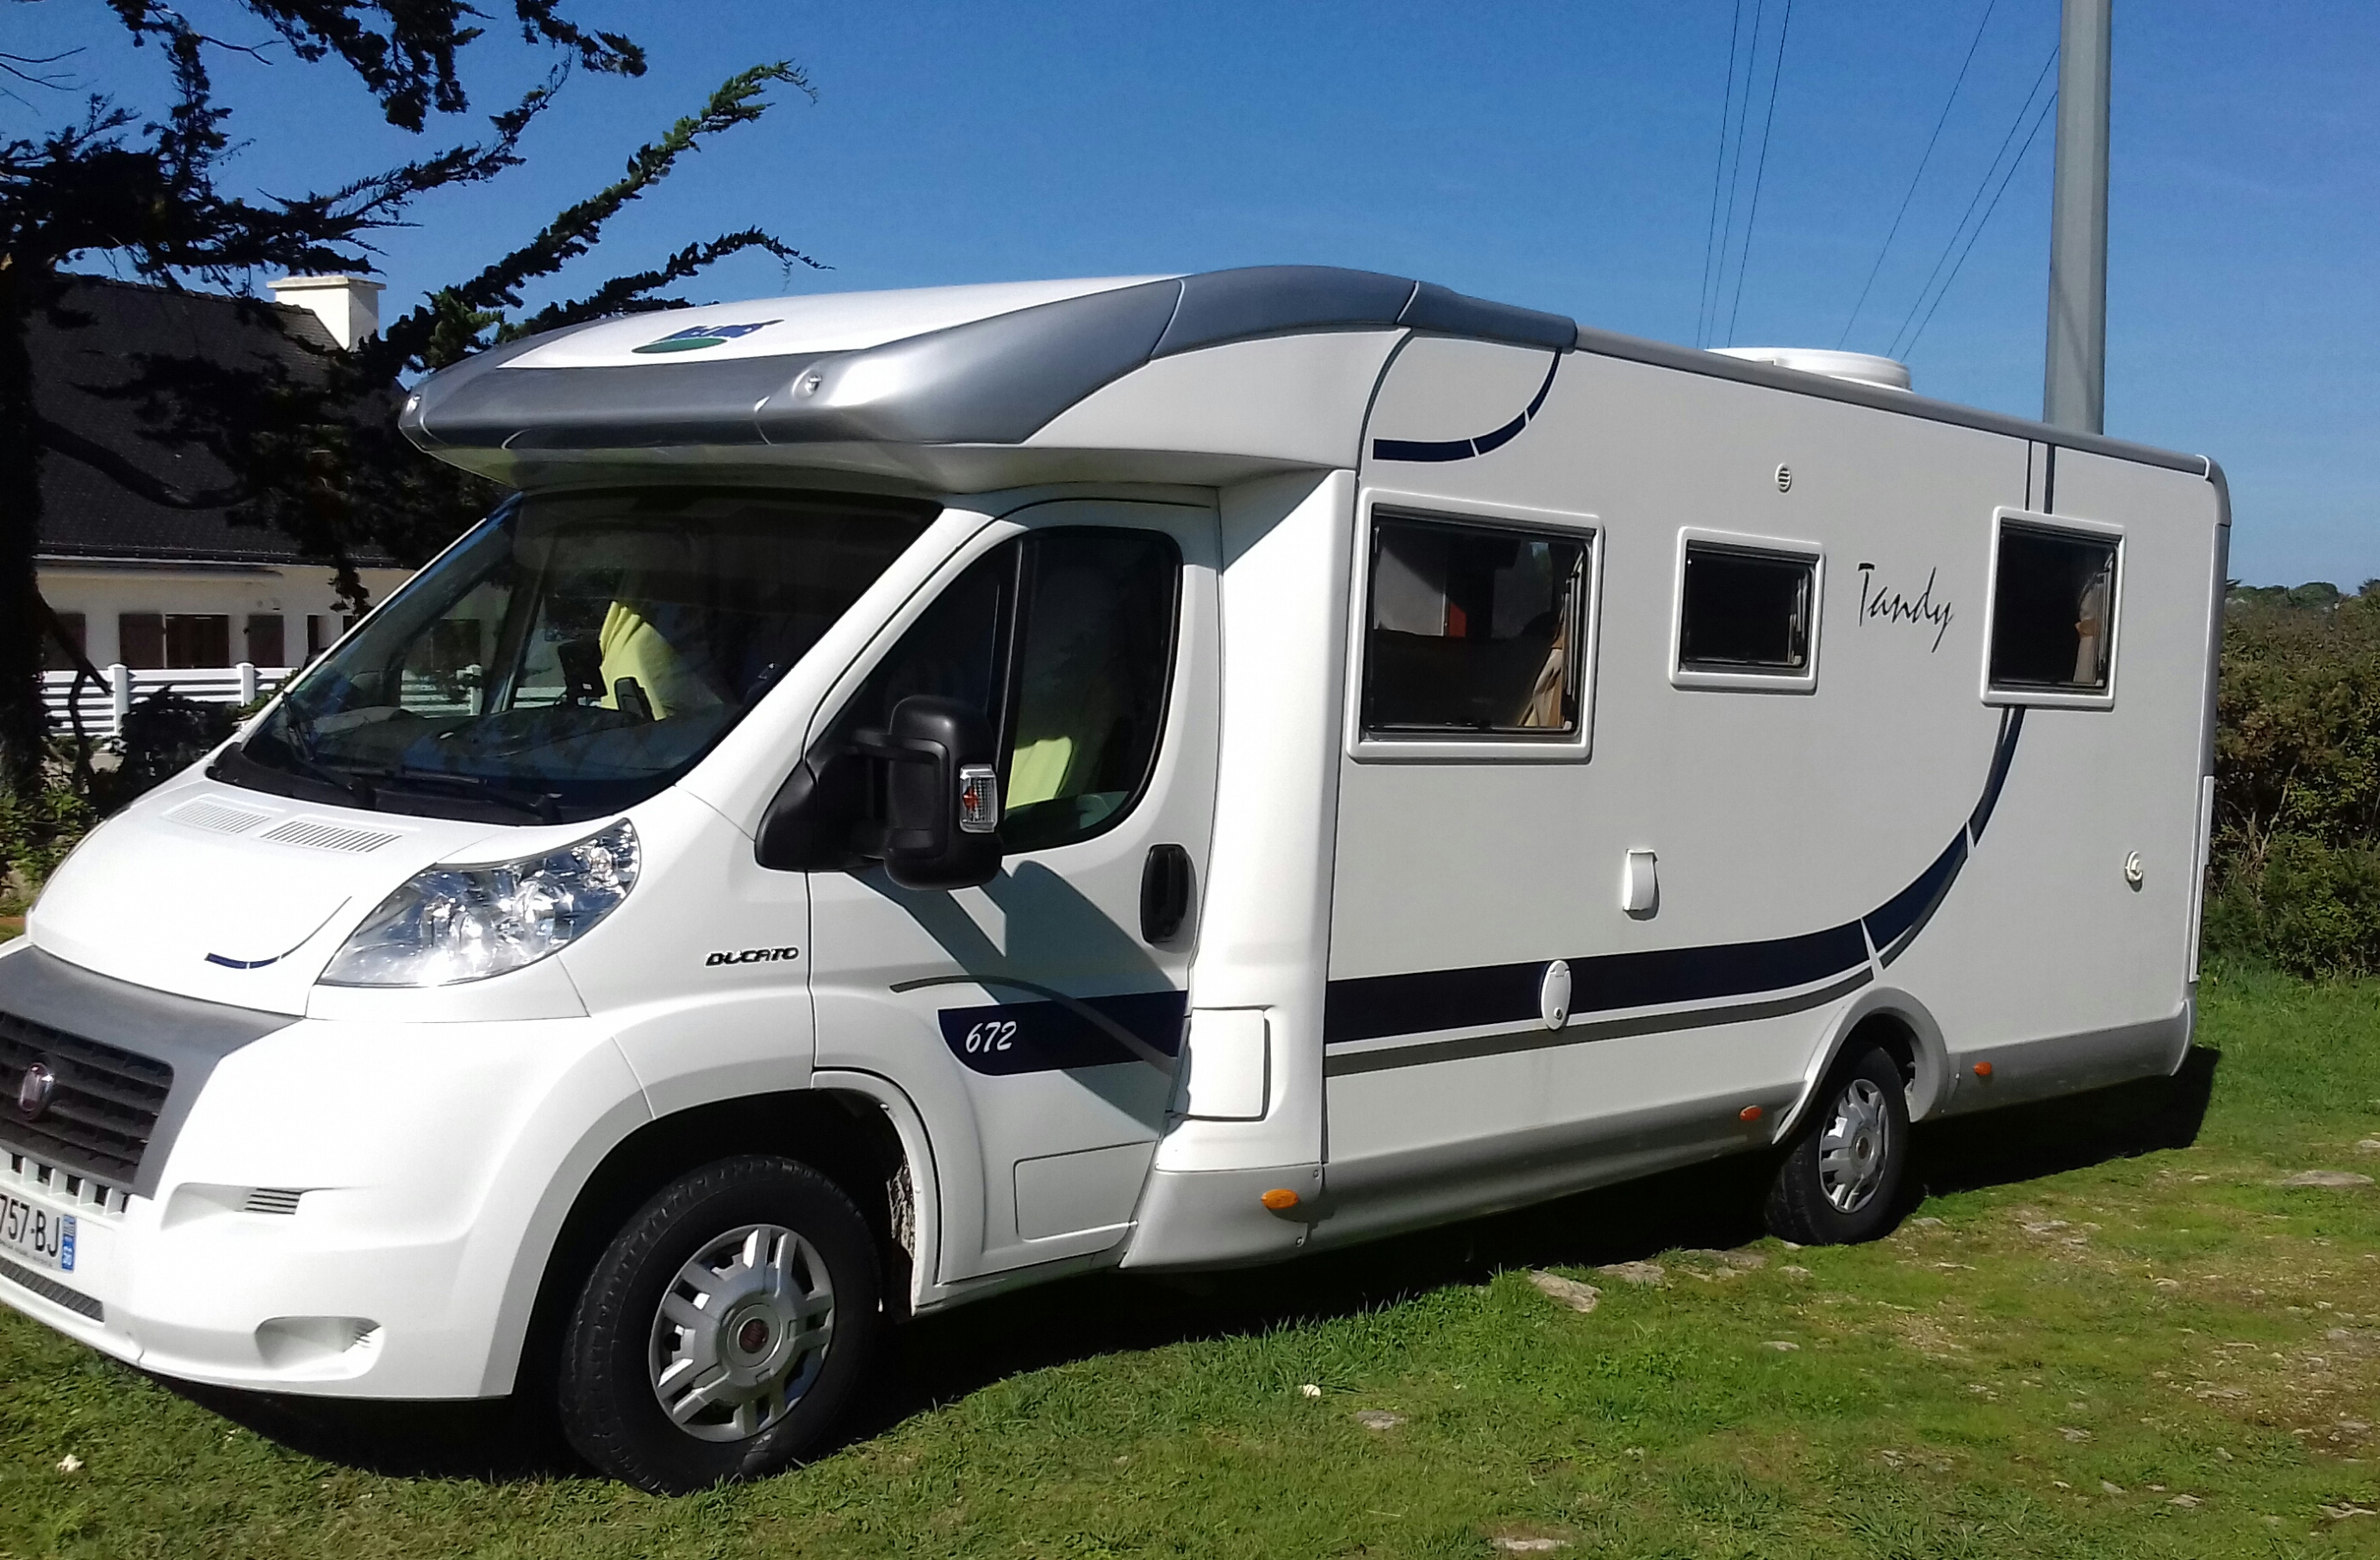 Camping car occasion mc louis tandy 672